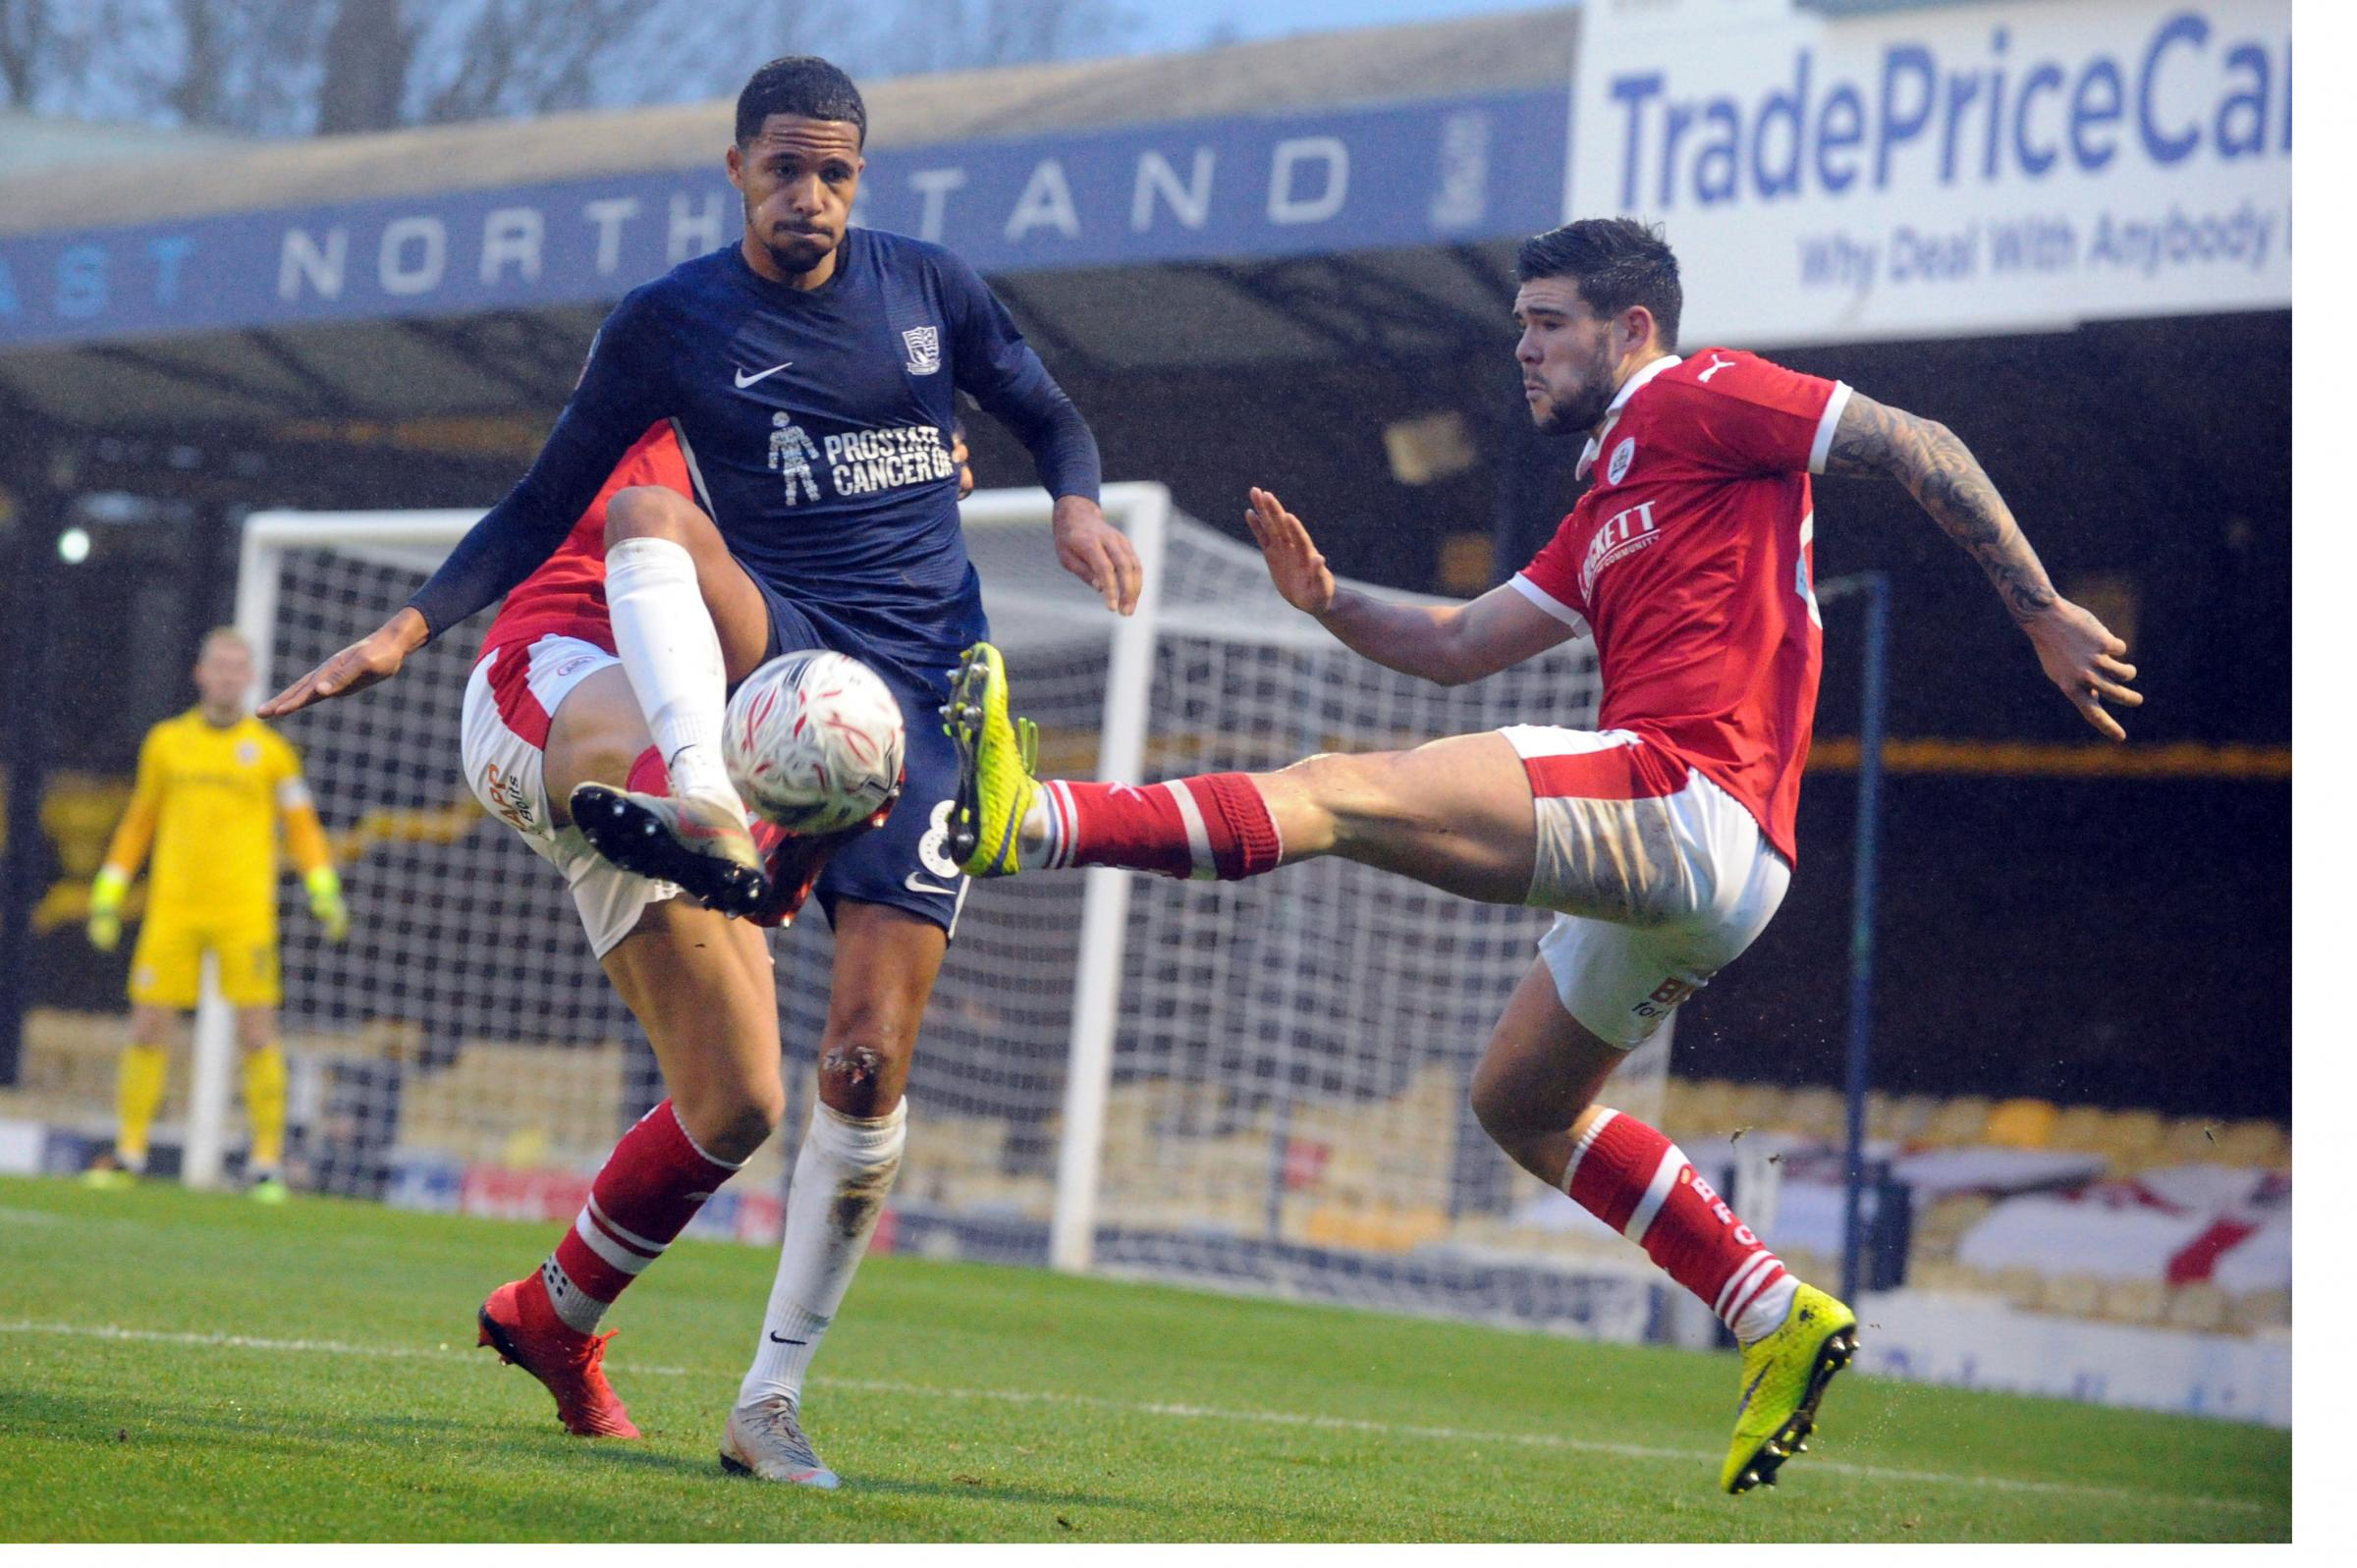 On the ball - Southend United goalscorer Timothee Dieng